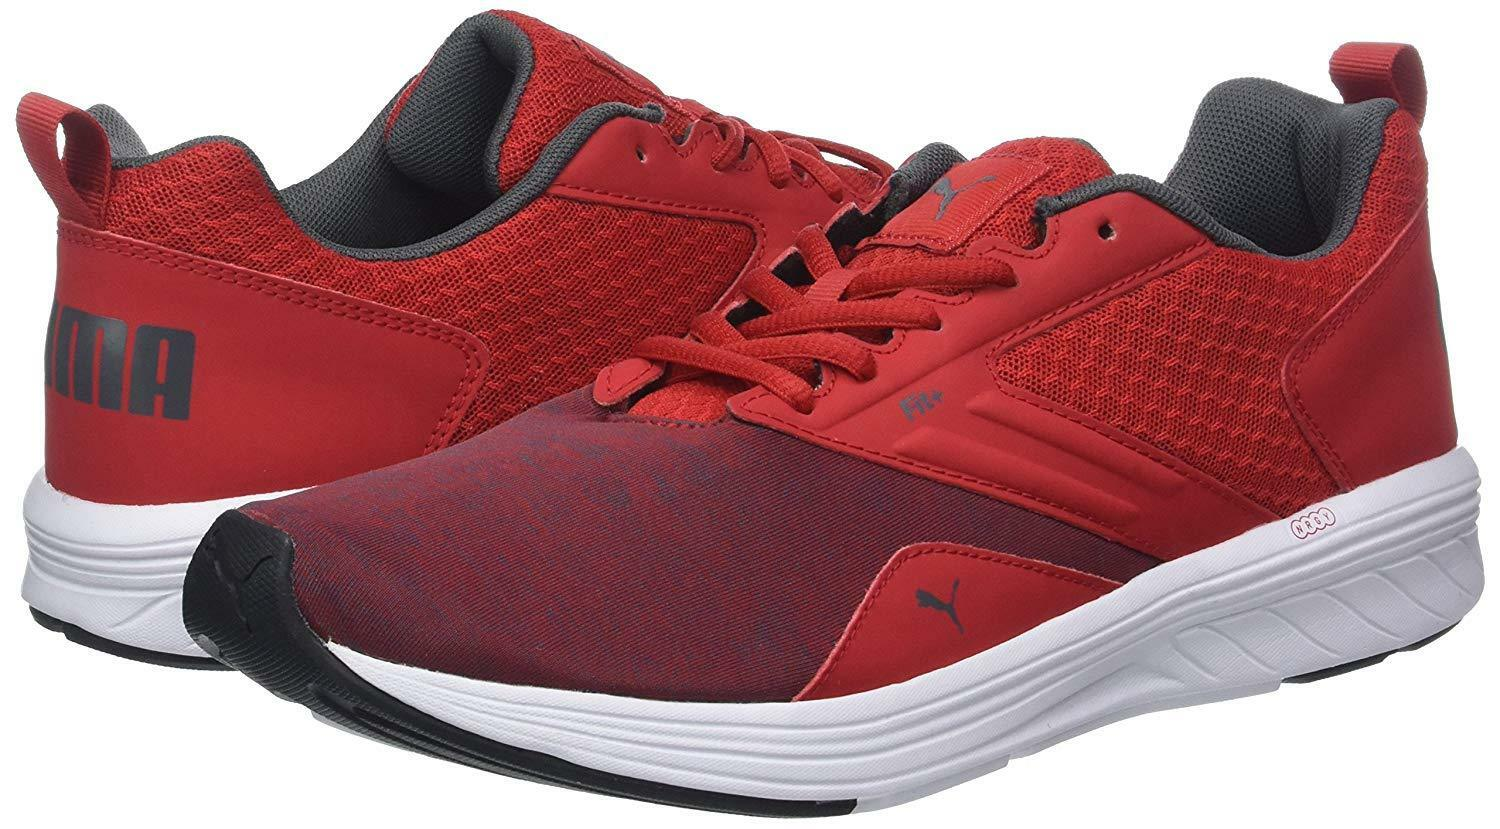 PUMA new Mens NRGY Comet Ribbon Red Iron Gate shoes 190556 sz 12